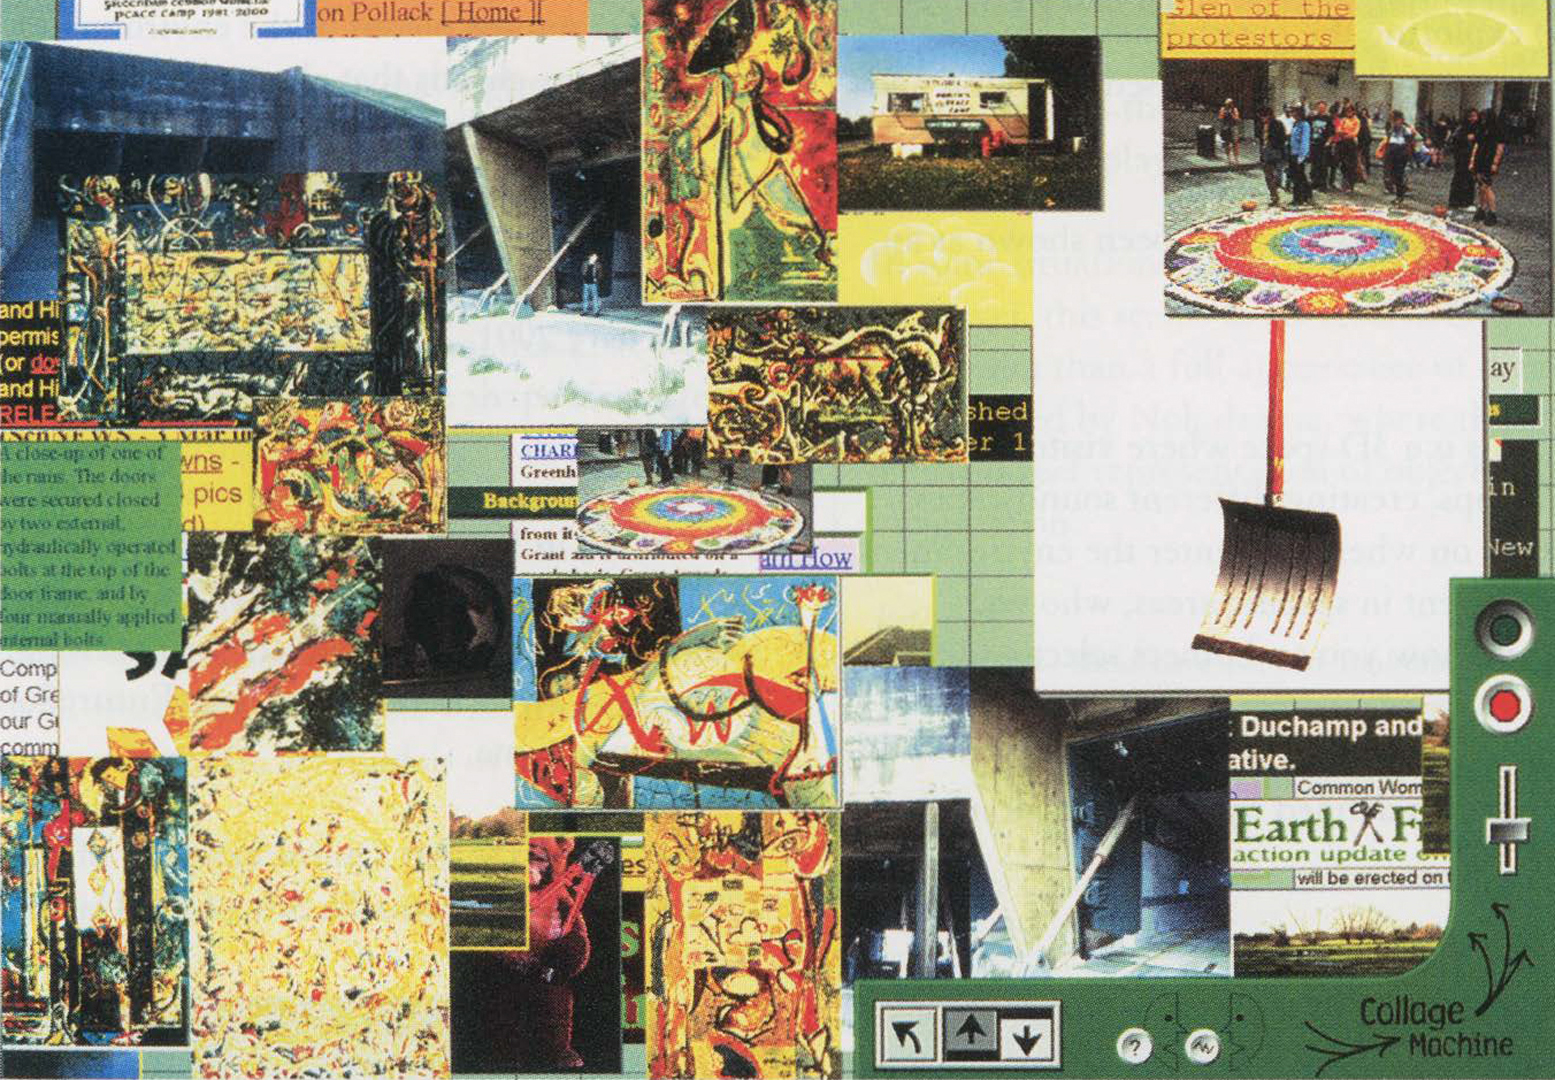 ©2001, Andruid Kerne, Collage Machine